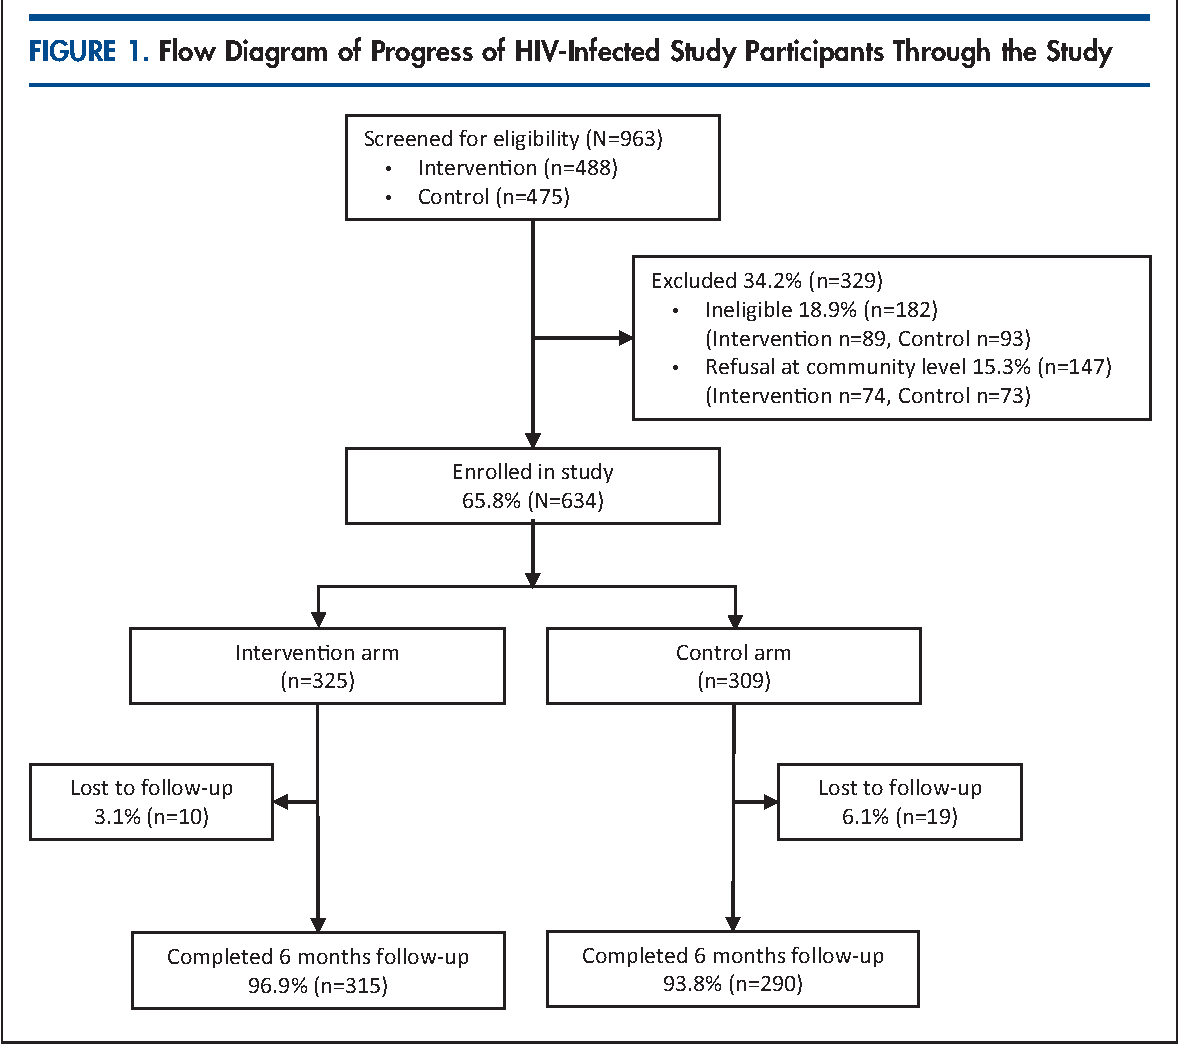 FIGURE 1. Flow Diagram of Progress of HIV-Infected Study Participants Through the Study